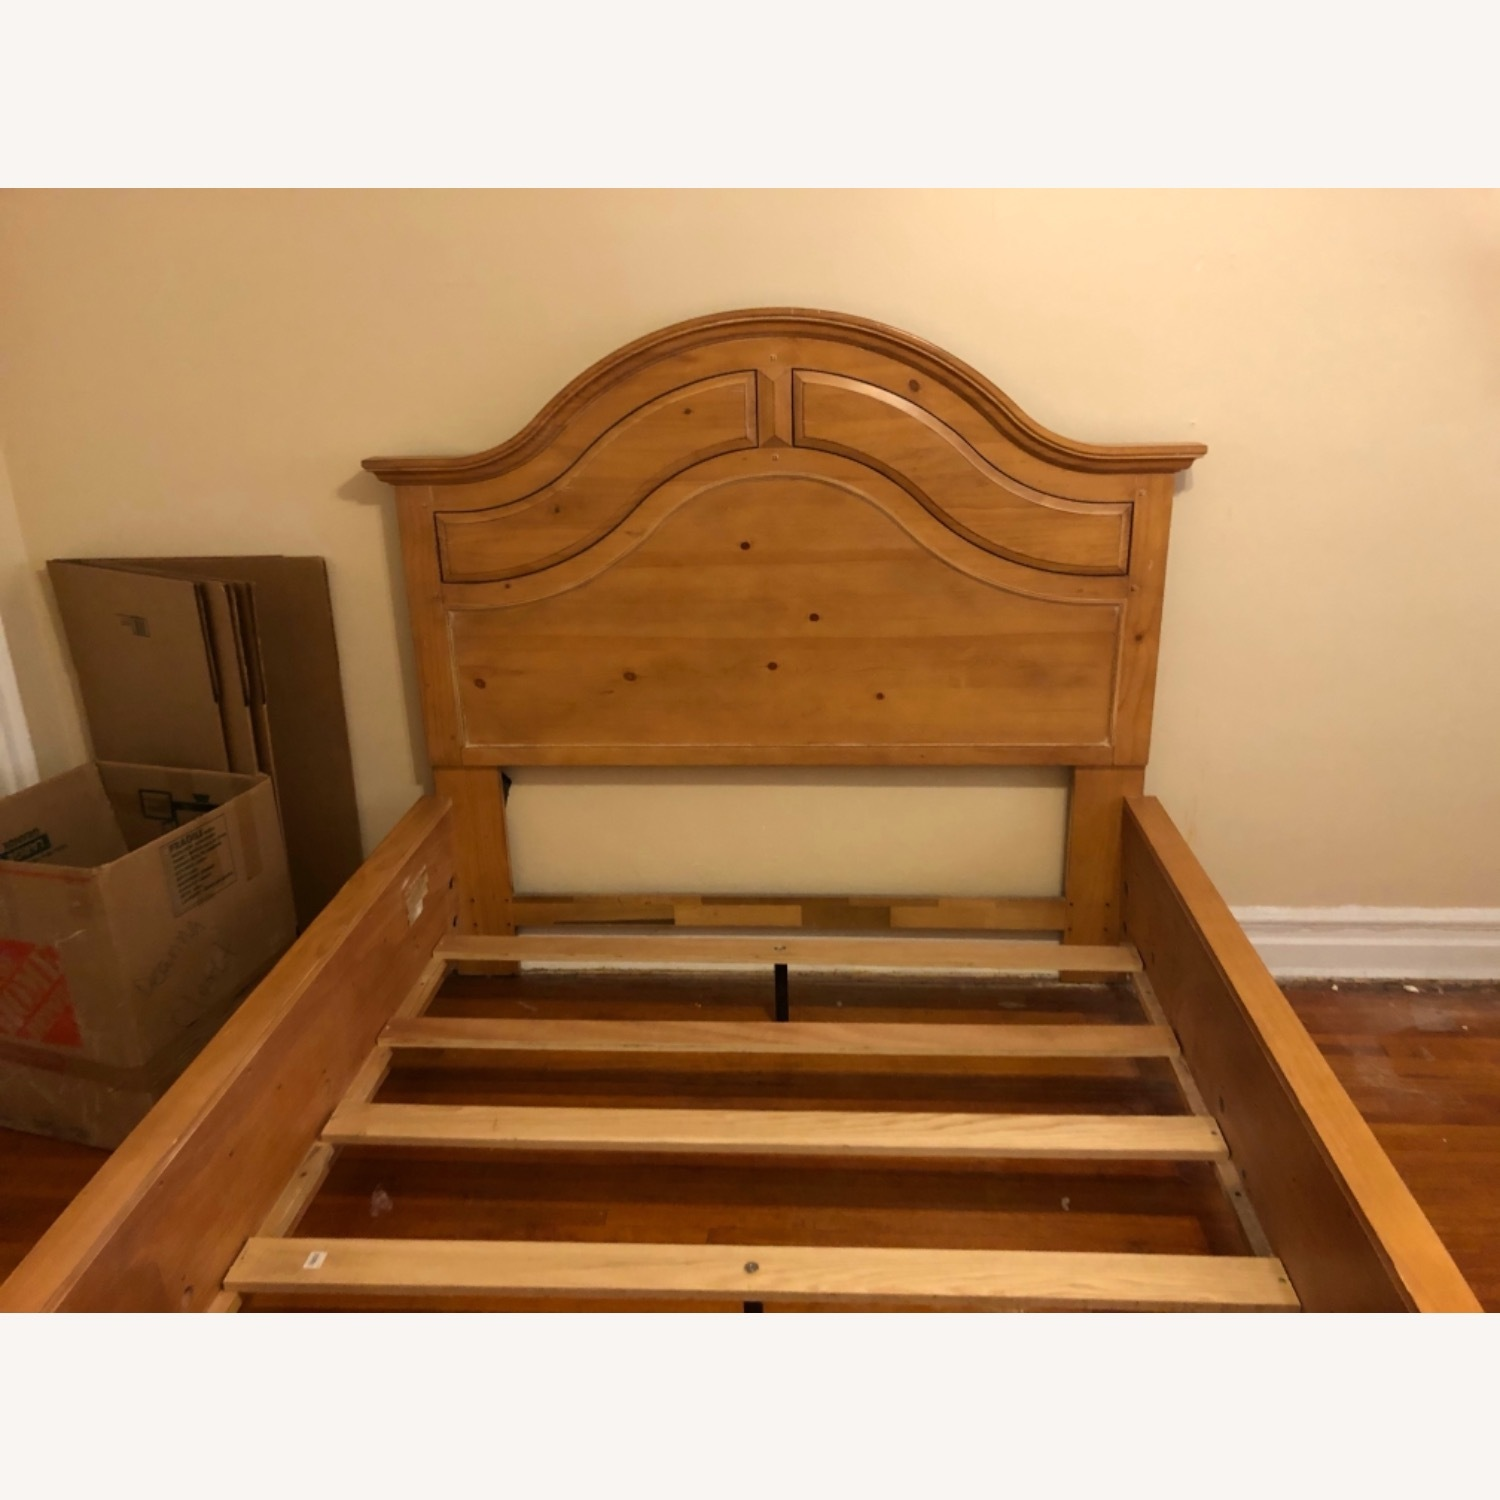 Broyhill Furniture Solid Wood Queen Size Bed - image-8